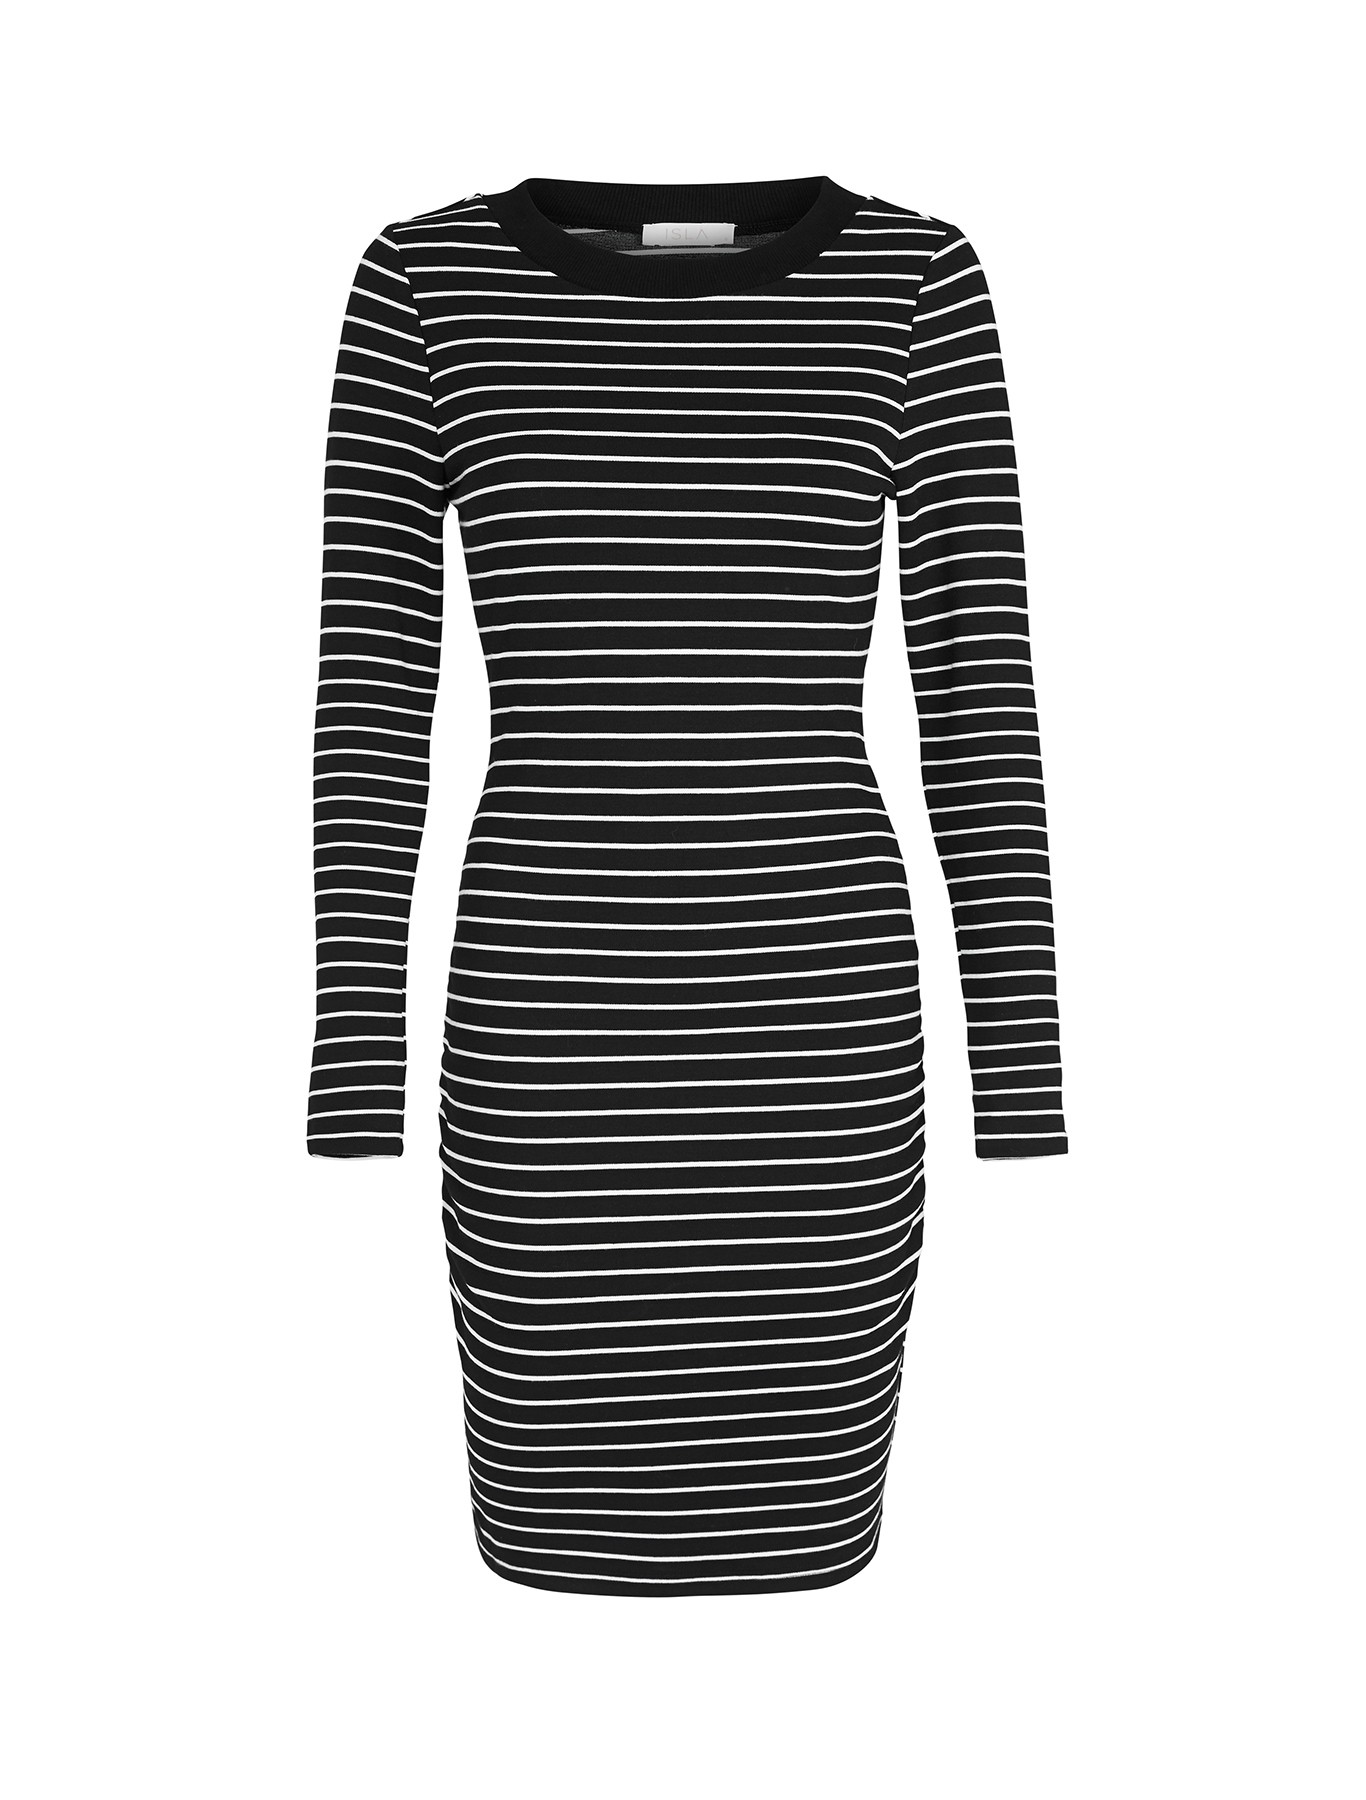 The got to have dress - LaFemme Rouche Midi Dress with Forty Up